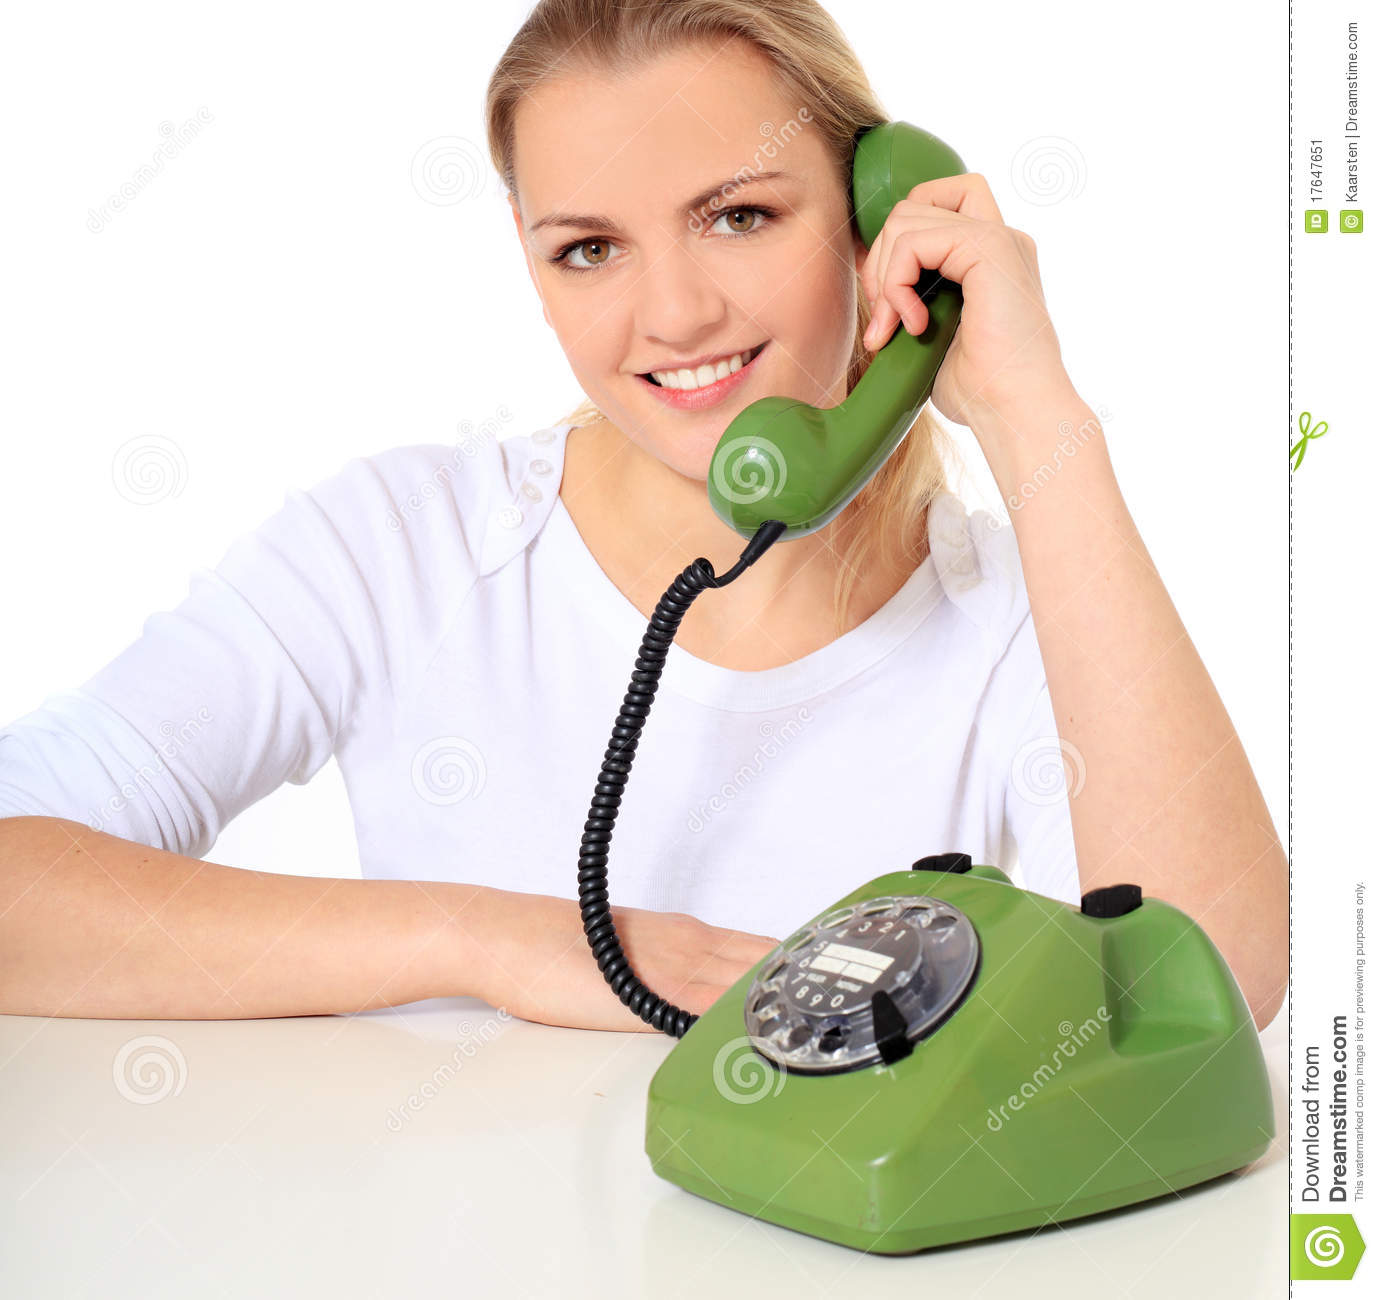 Attractive young woman doing a phone call all on white background